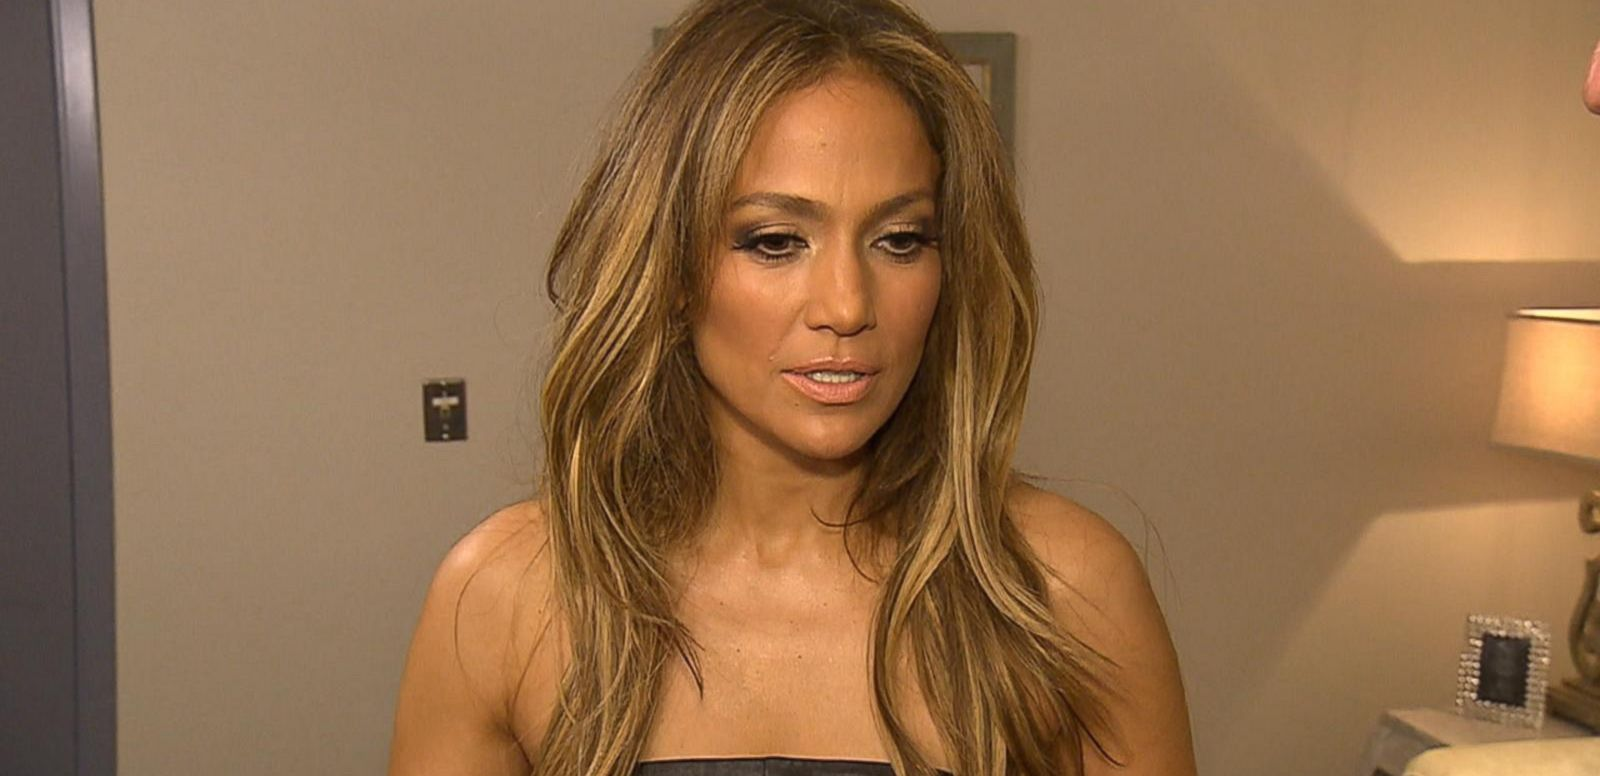 VIDEO: Exclusive: Jennifer Lopez Opens Up About Vegas Show, Raising Her Kids